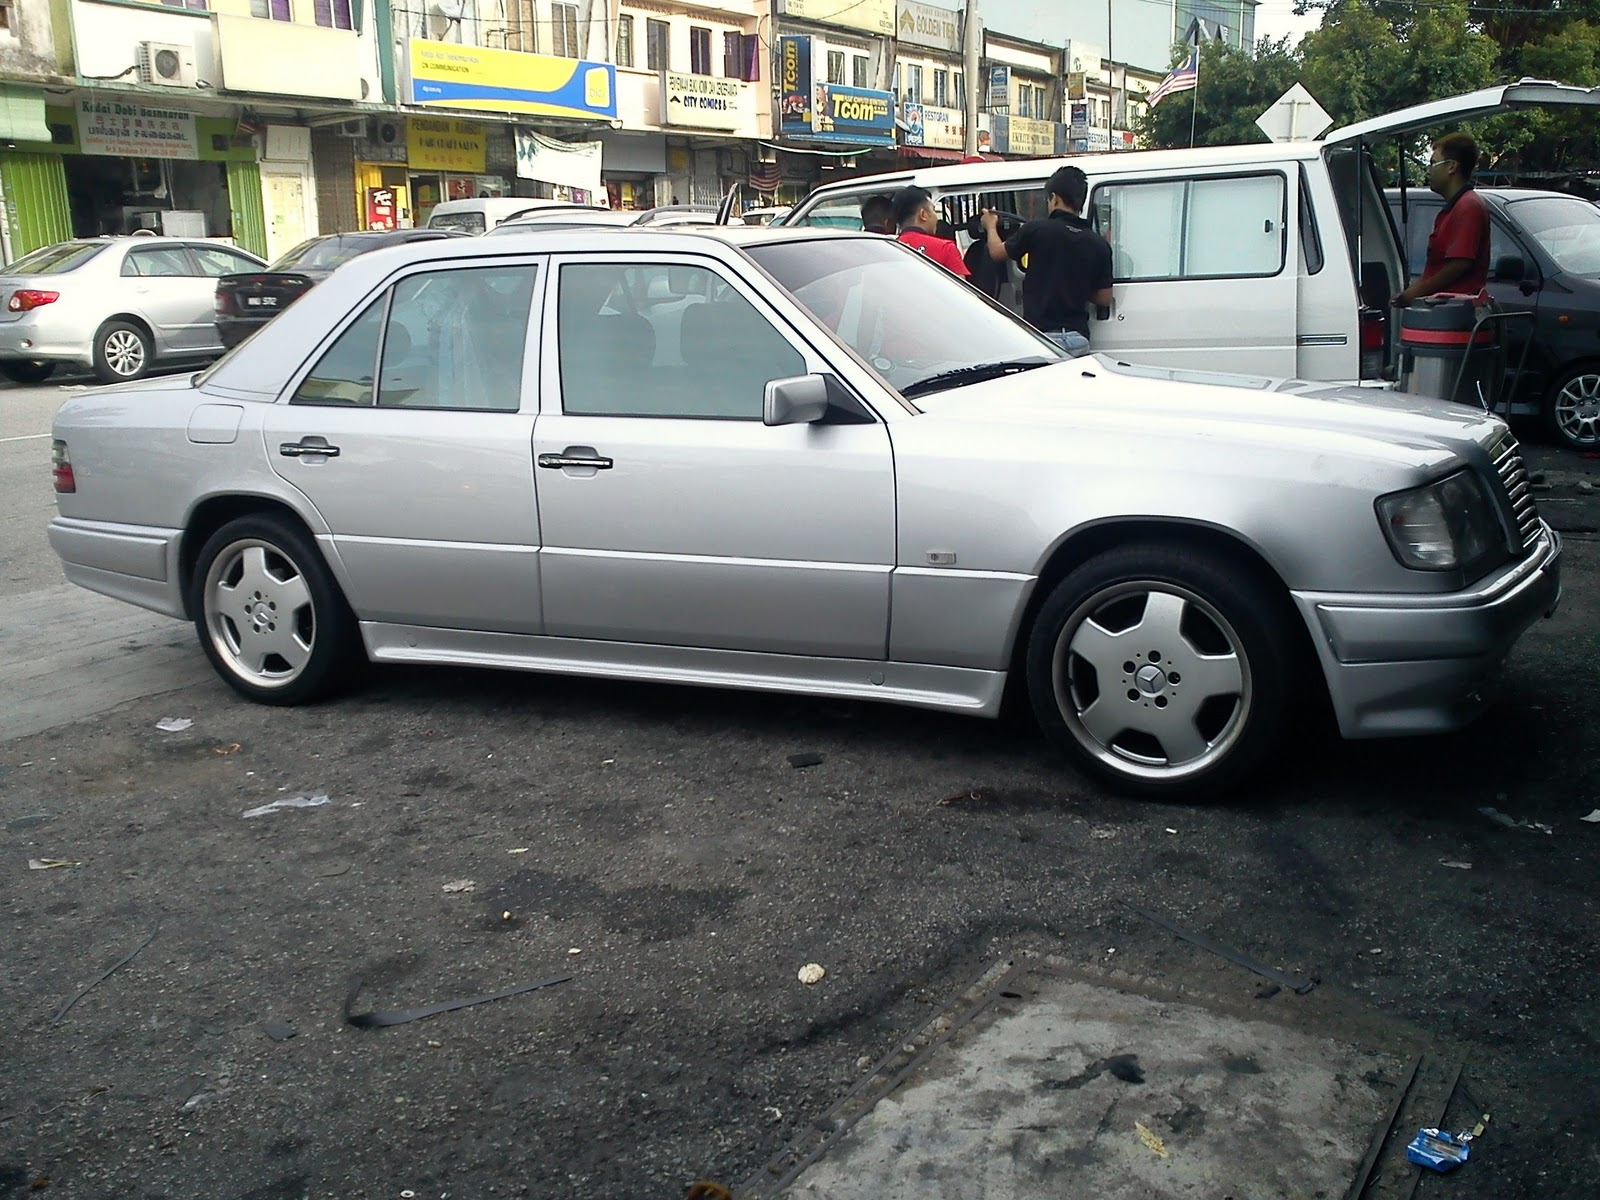 Motoring-Malaysia: An Update On The 1990 W124 Mercedes Benz 200e